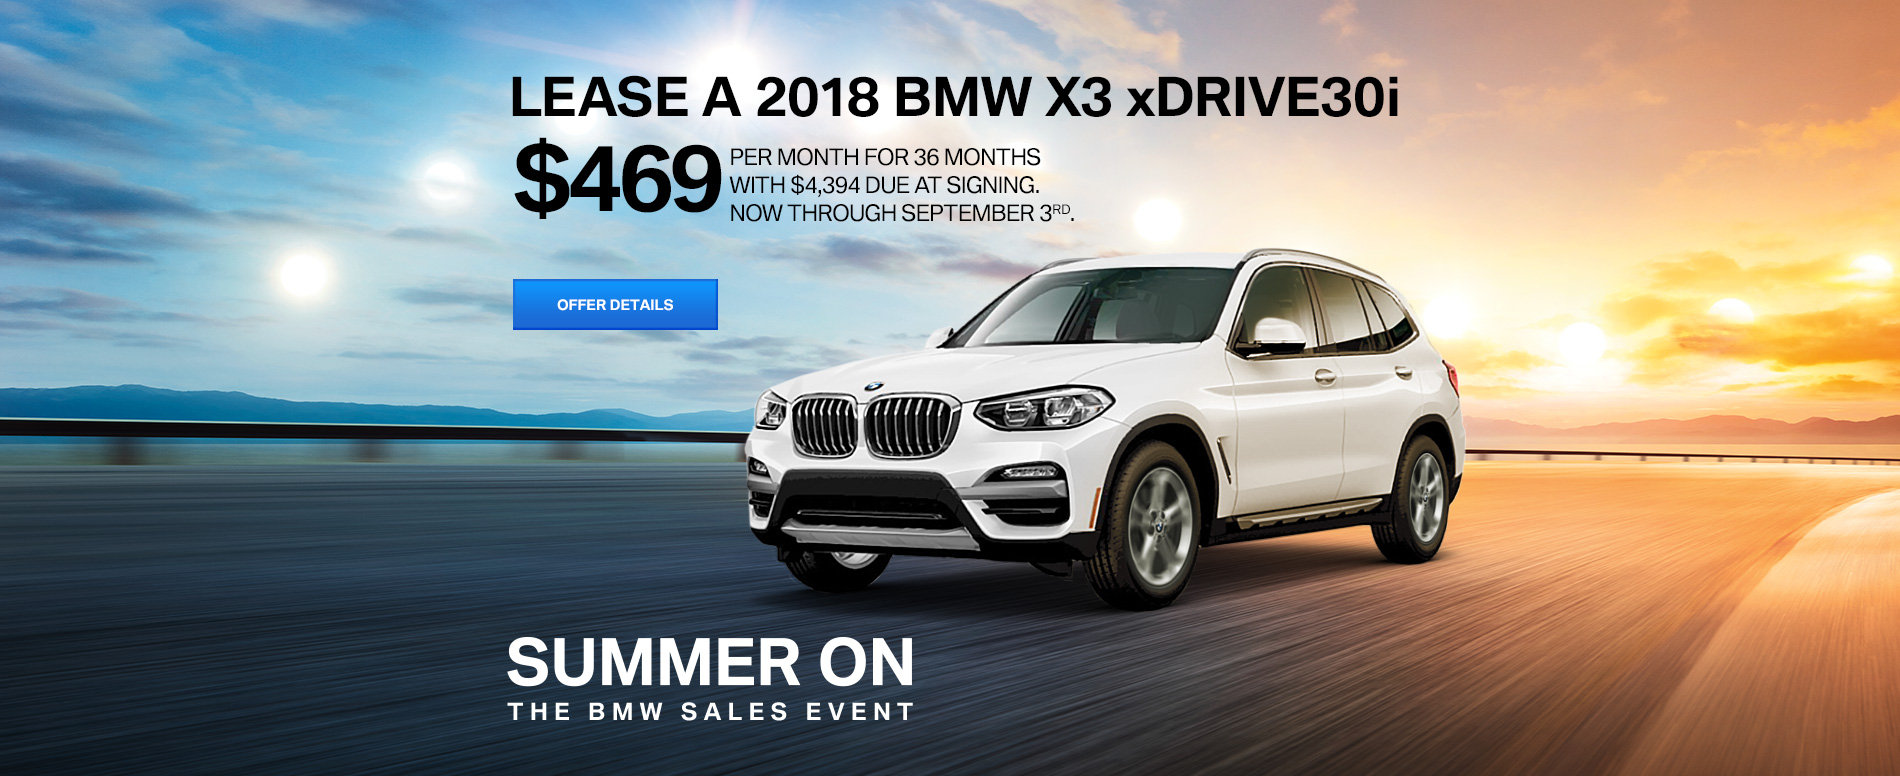 LEASE A 2018 X3 xDRIVE30i FOR $469 /MO FOR 36 MONTHS